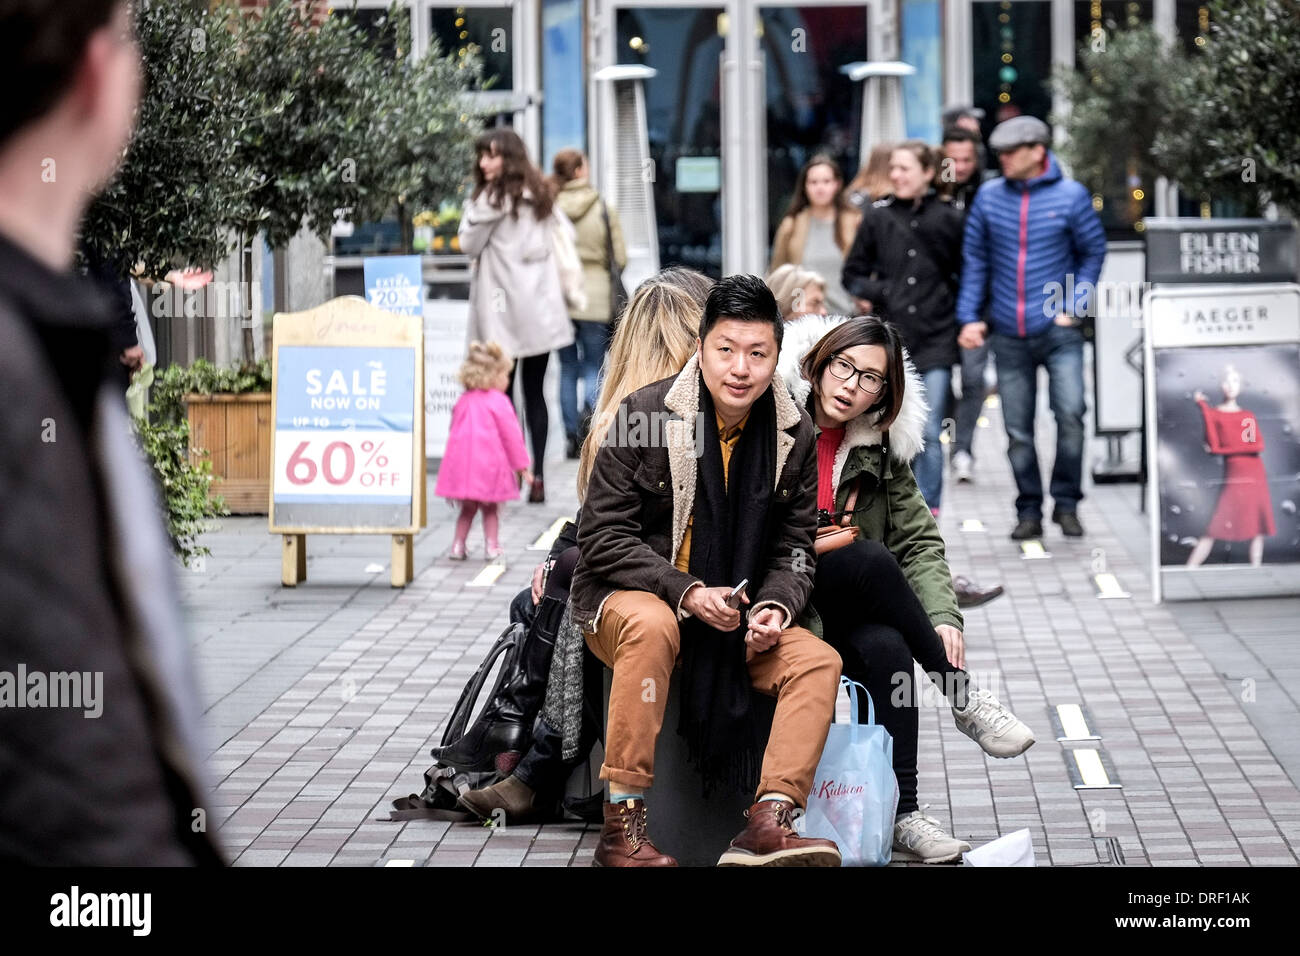 Chinese Shoppers Stock Photos & Chinese Shoppers Stock ...